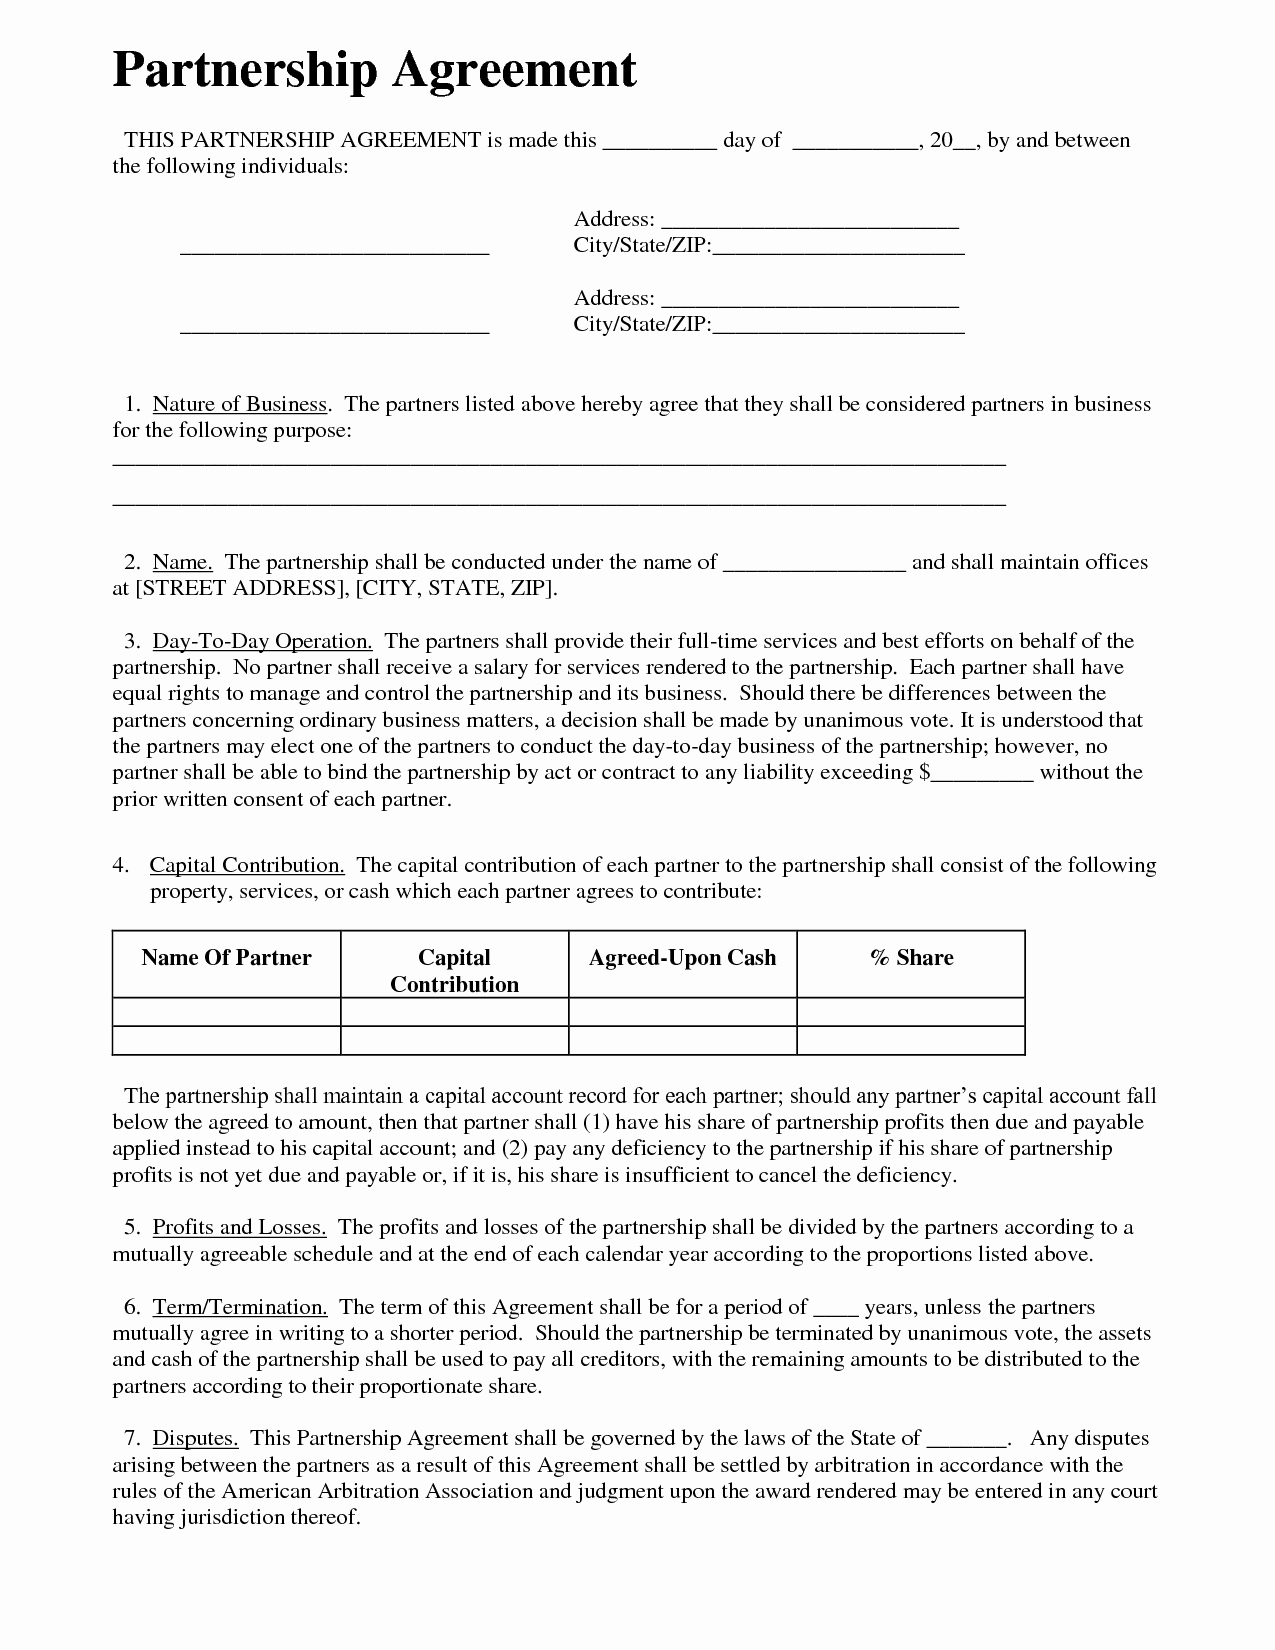 Business Partnership Agreement Template Free Inspirational Partnership Agreement Business Templates